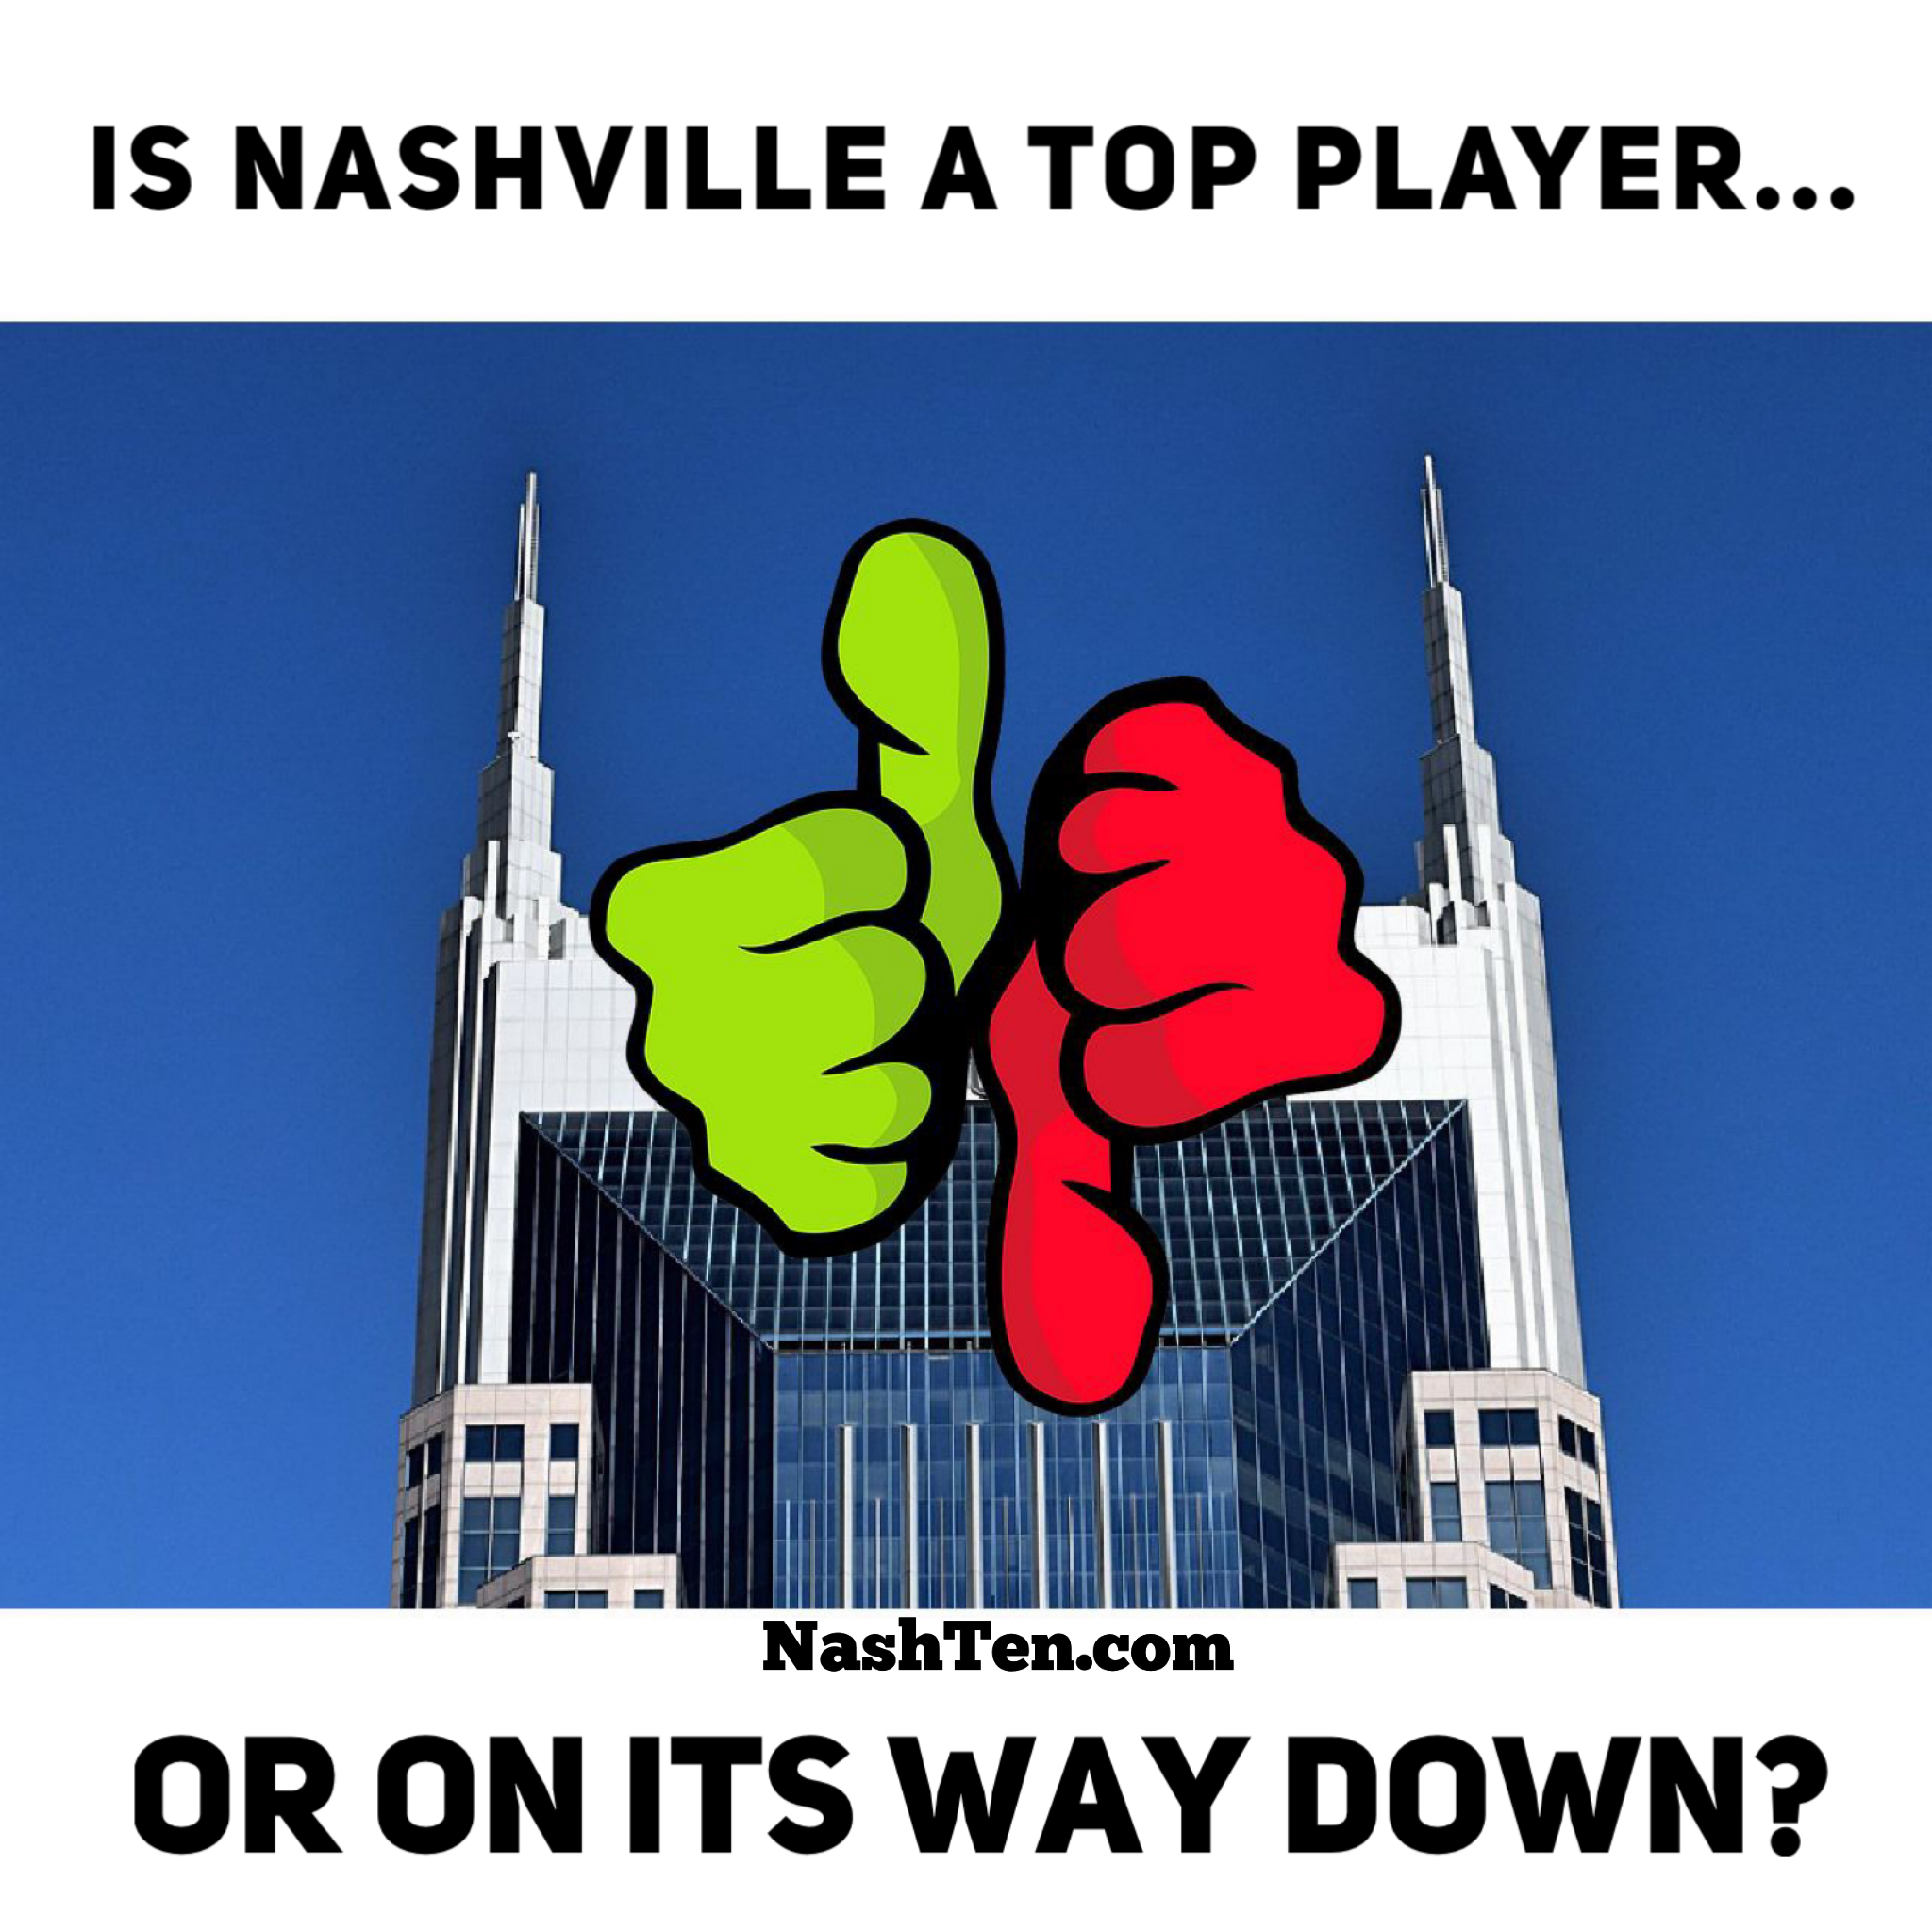 Nashville: Top Player or on its way out?